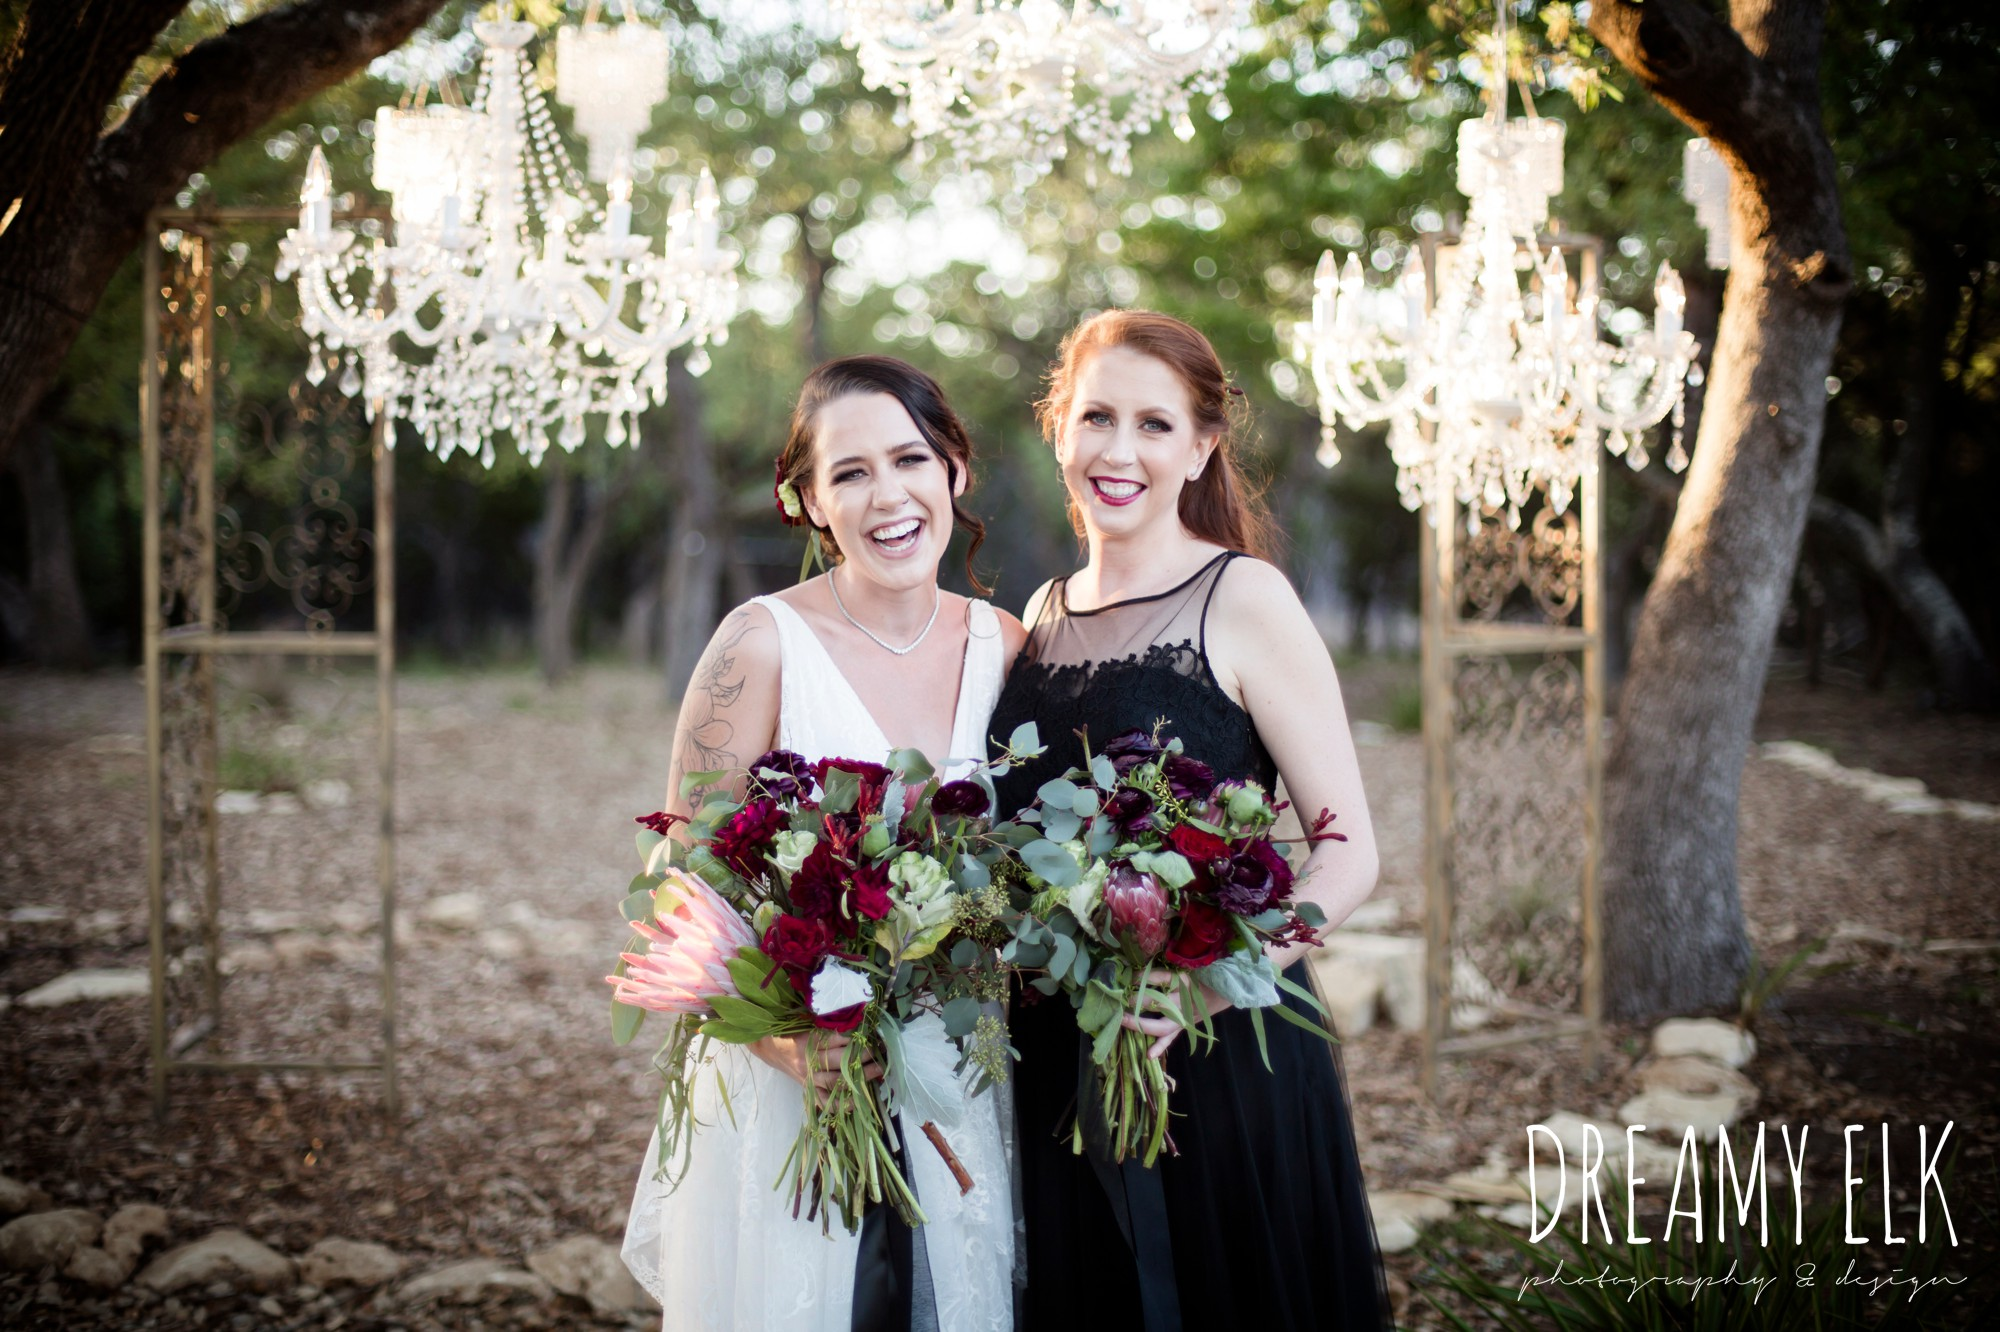 the cedars ranch, libby cole creations, saint isabel bridal, melange bridal, glam gone good, intelligent lighting design, moody rich delicate marfa inspired burgundy maroon black white spring styled wedding photo shoot {dreamy elk photography and design}